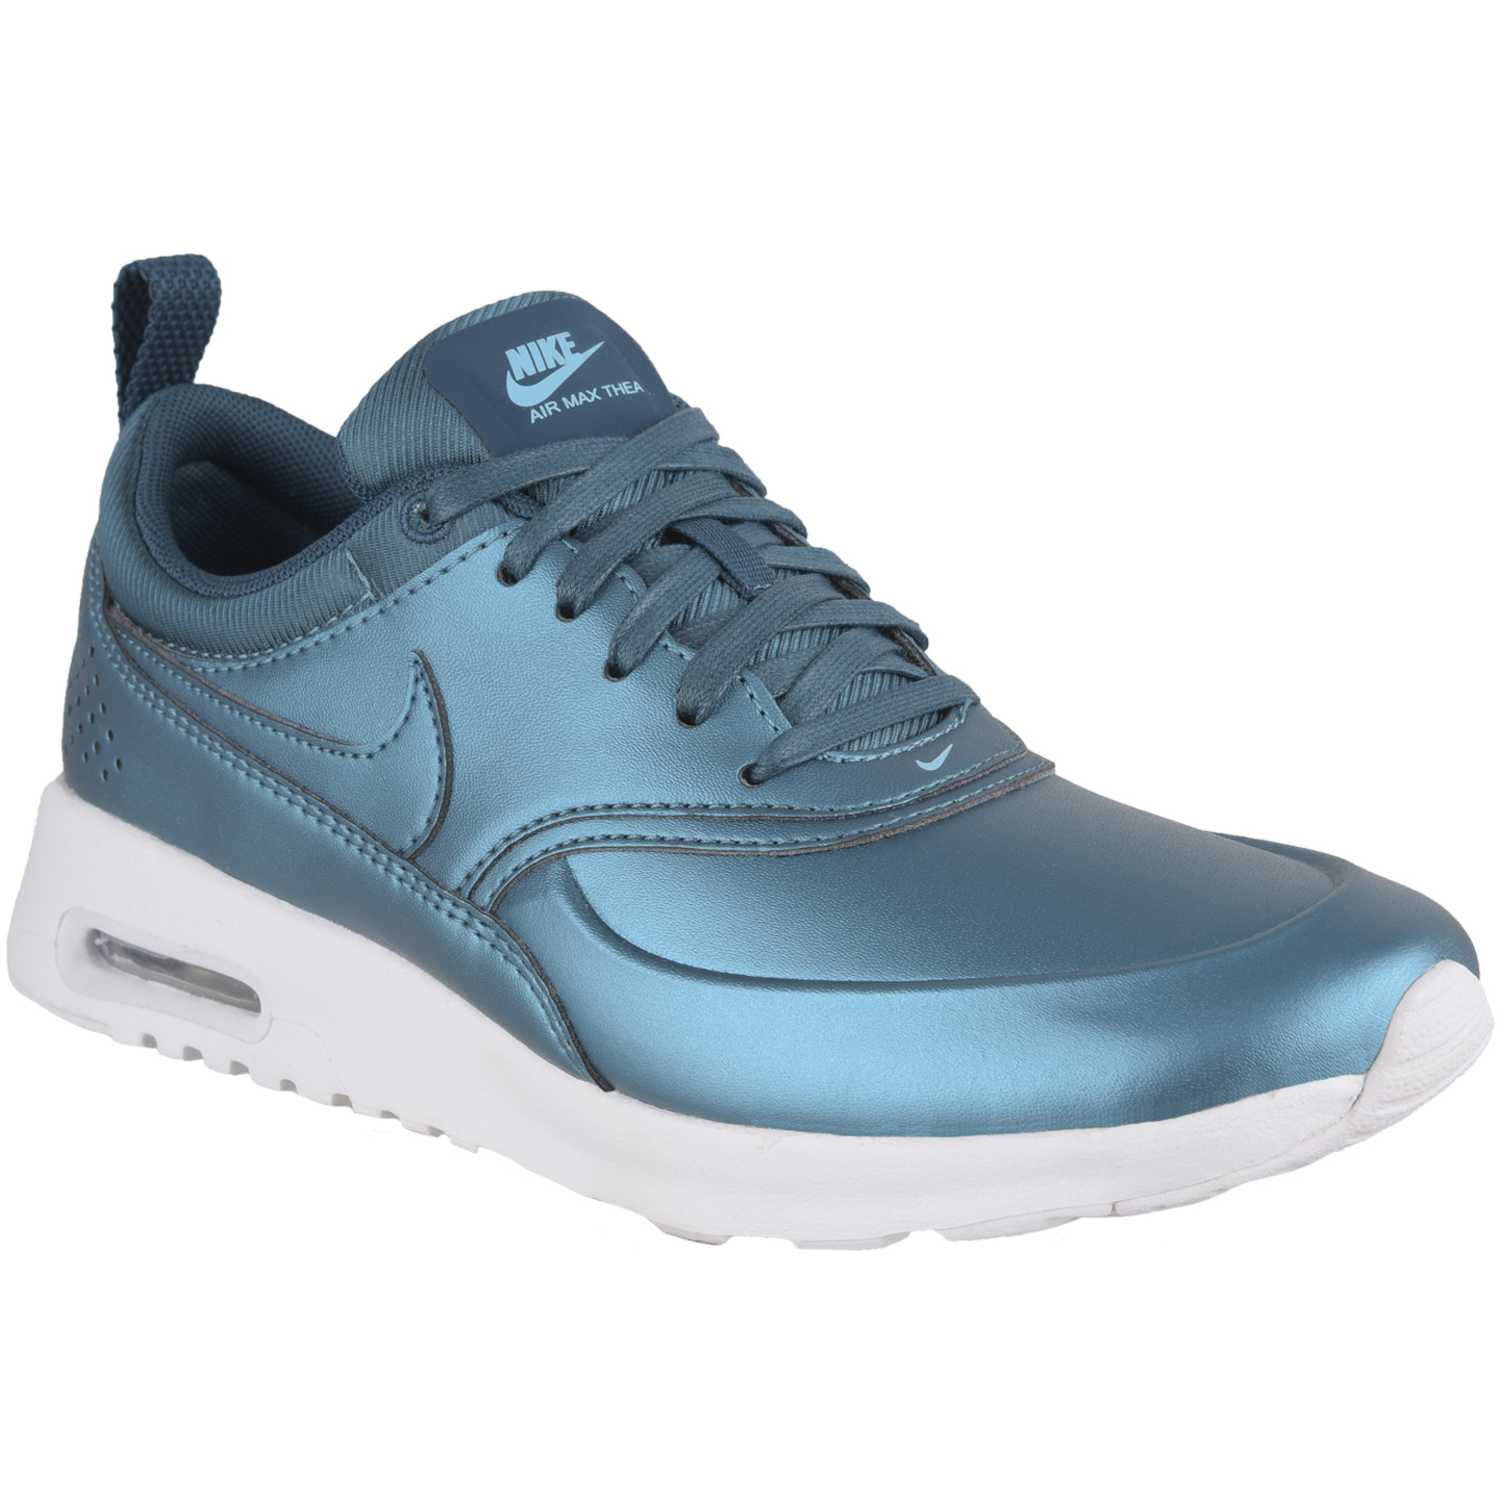 purchase cheap 22c83 41cf9 Zapatilla de Mujer Nike Turquesa wmns air max thea se